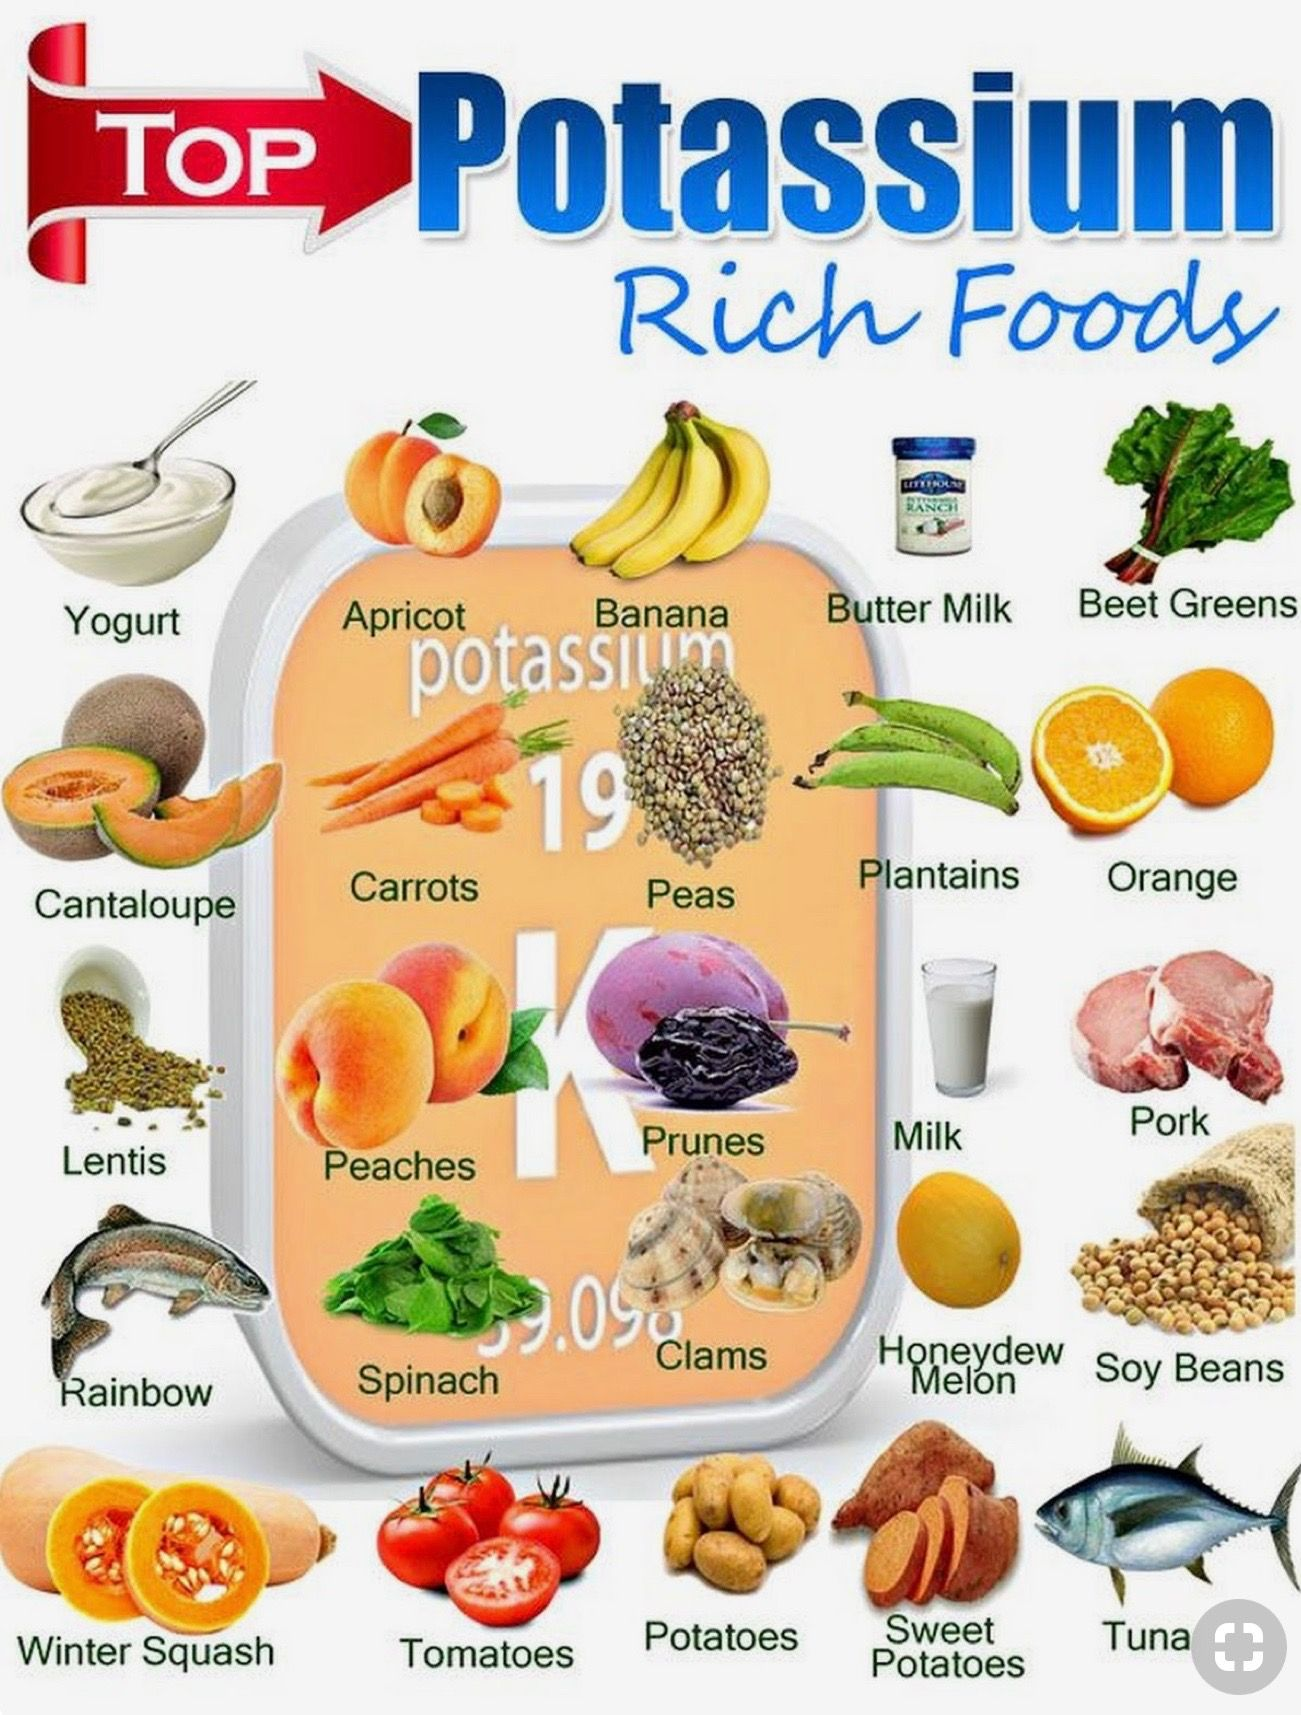 Pin by Jessi F. on Amazing Food High potassium foods